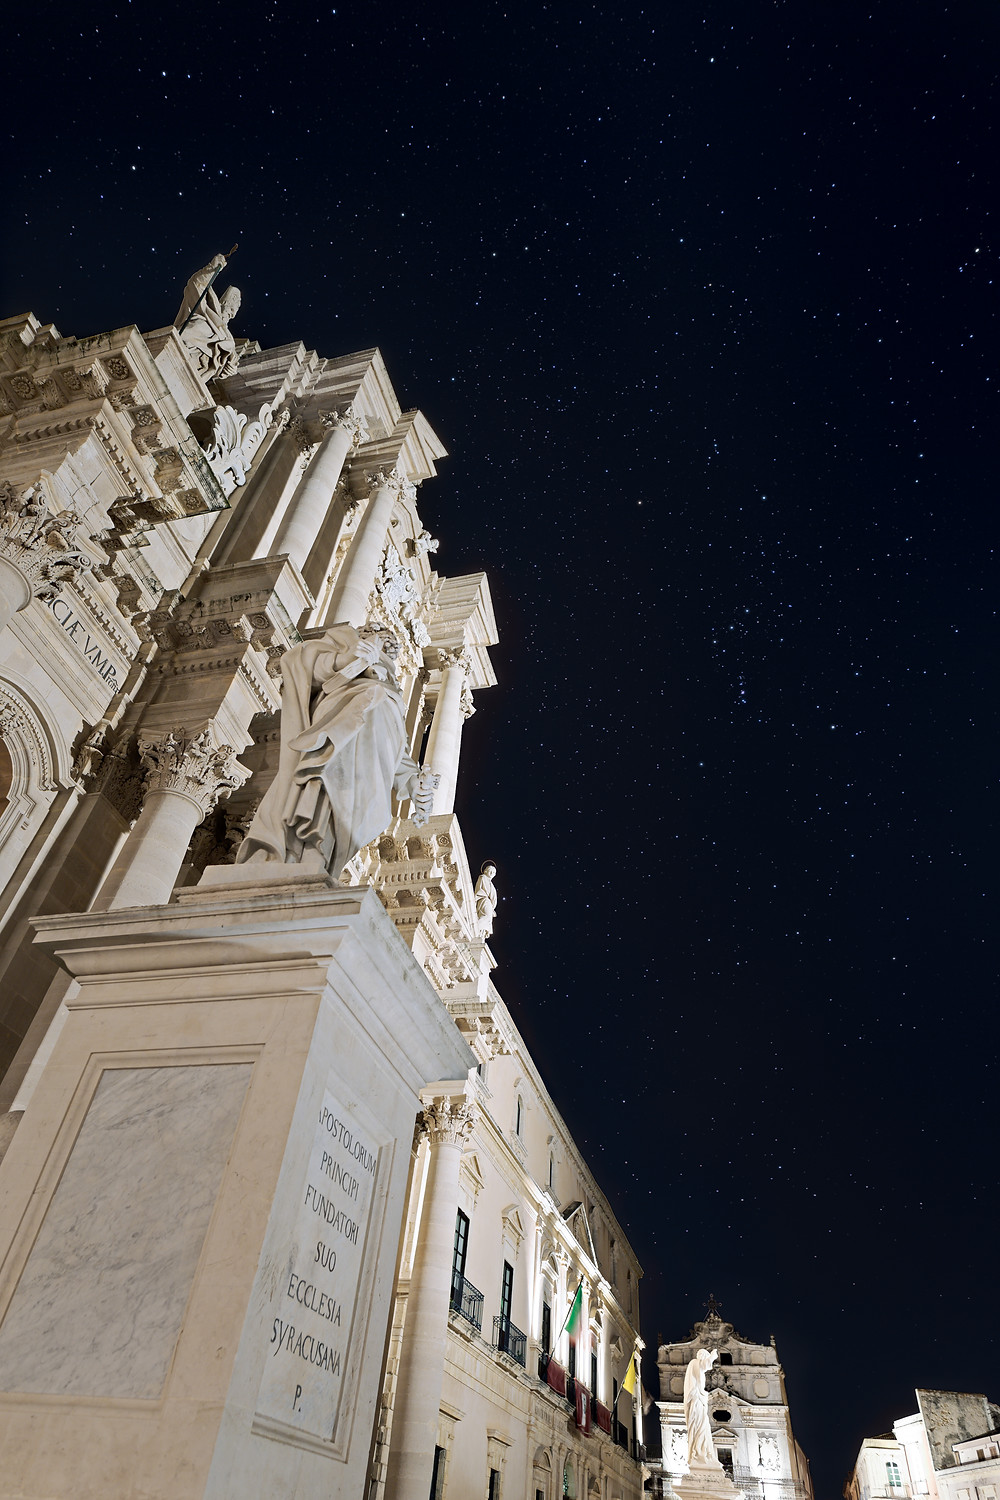 Orion Constellation above Siracusa's Duomo (Cathedral) Copyright Dario Giannobile Astrophotographer